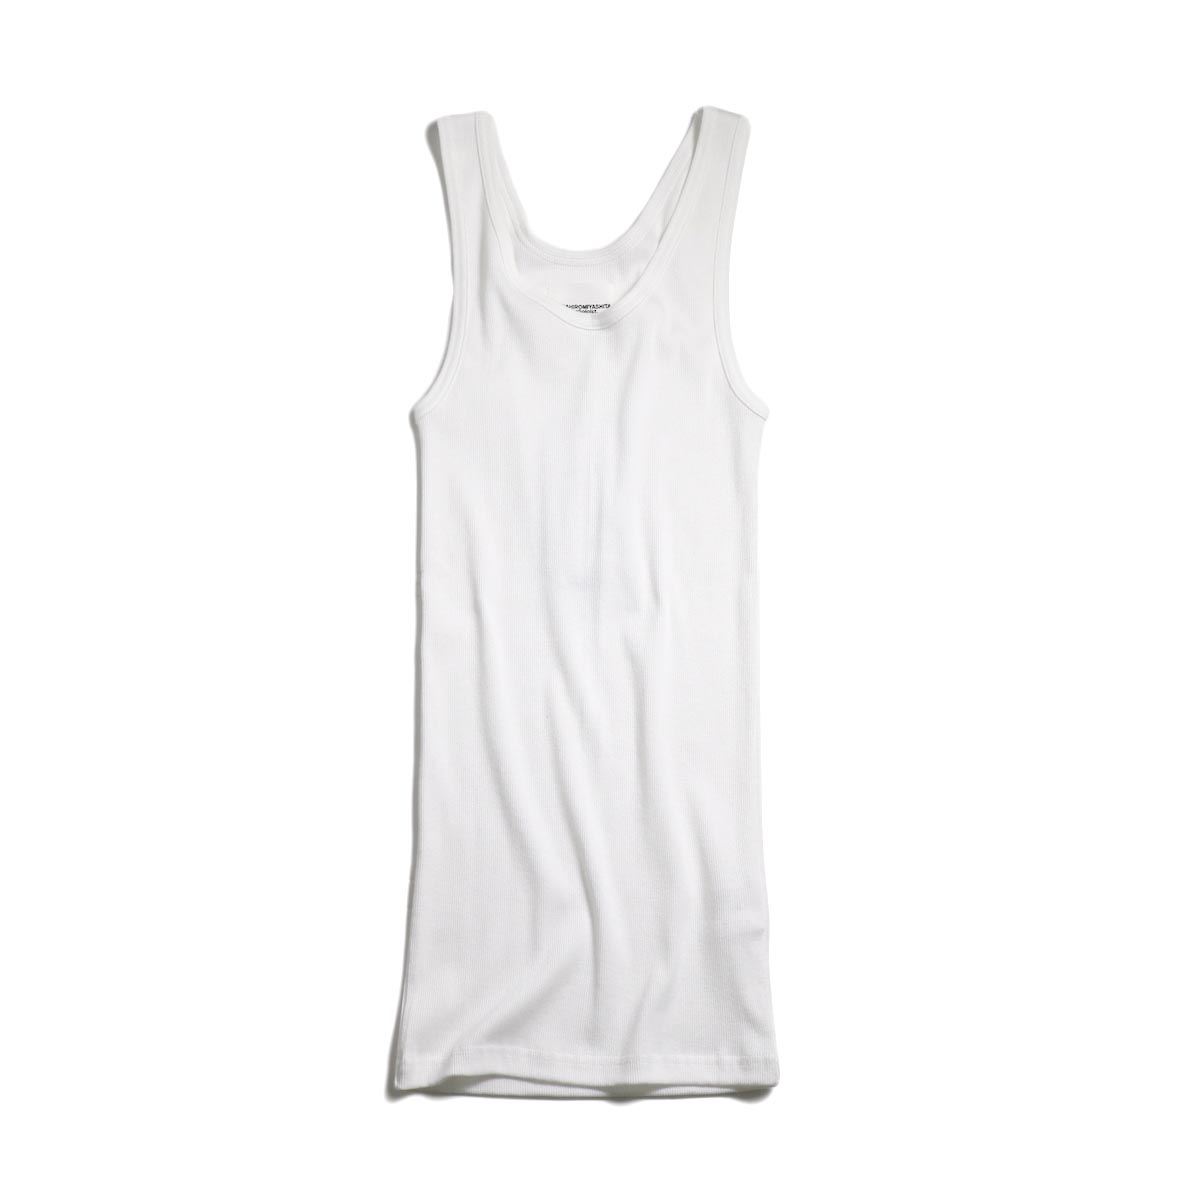 The Soloist / sc.0027bSS19 tank. -White